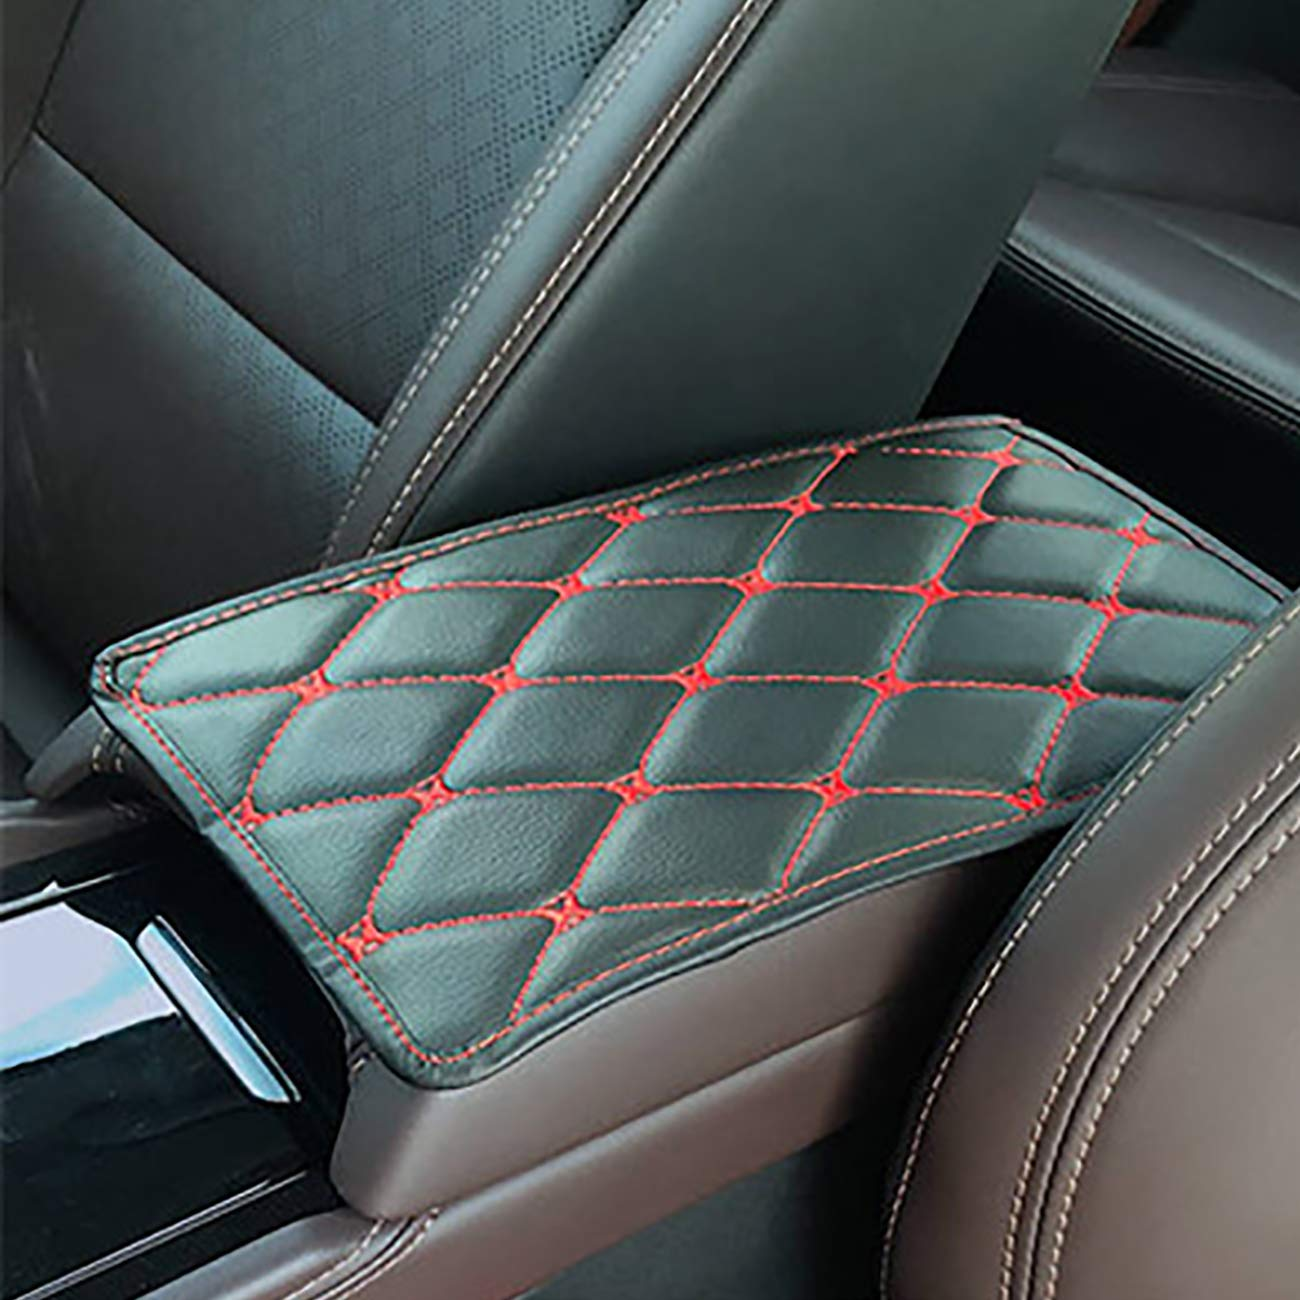 PU Leather Auto Arm Rest Cushion Pads Universal Car Armrest Cover Protector Uheng Car Center Console Cover Fit for Most Vehicle Truck Car Accessories SUV